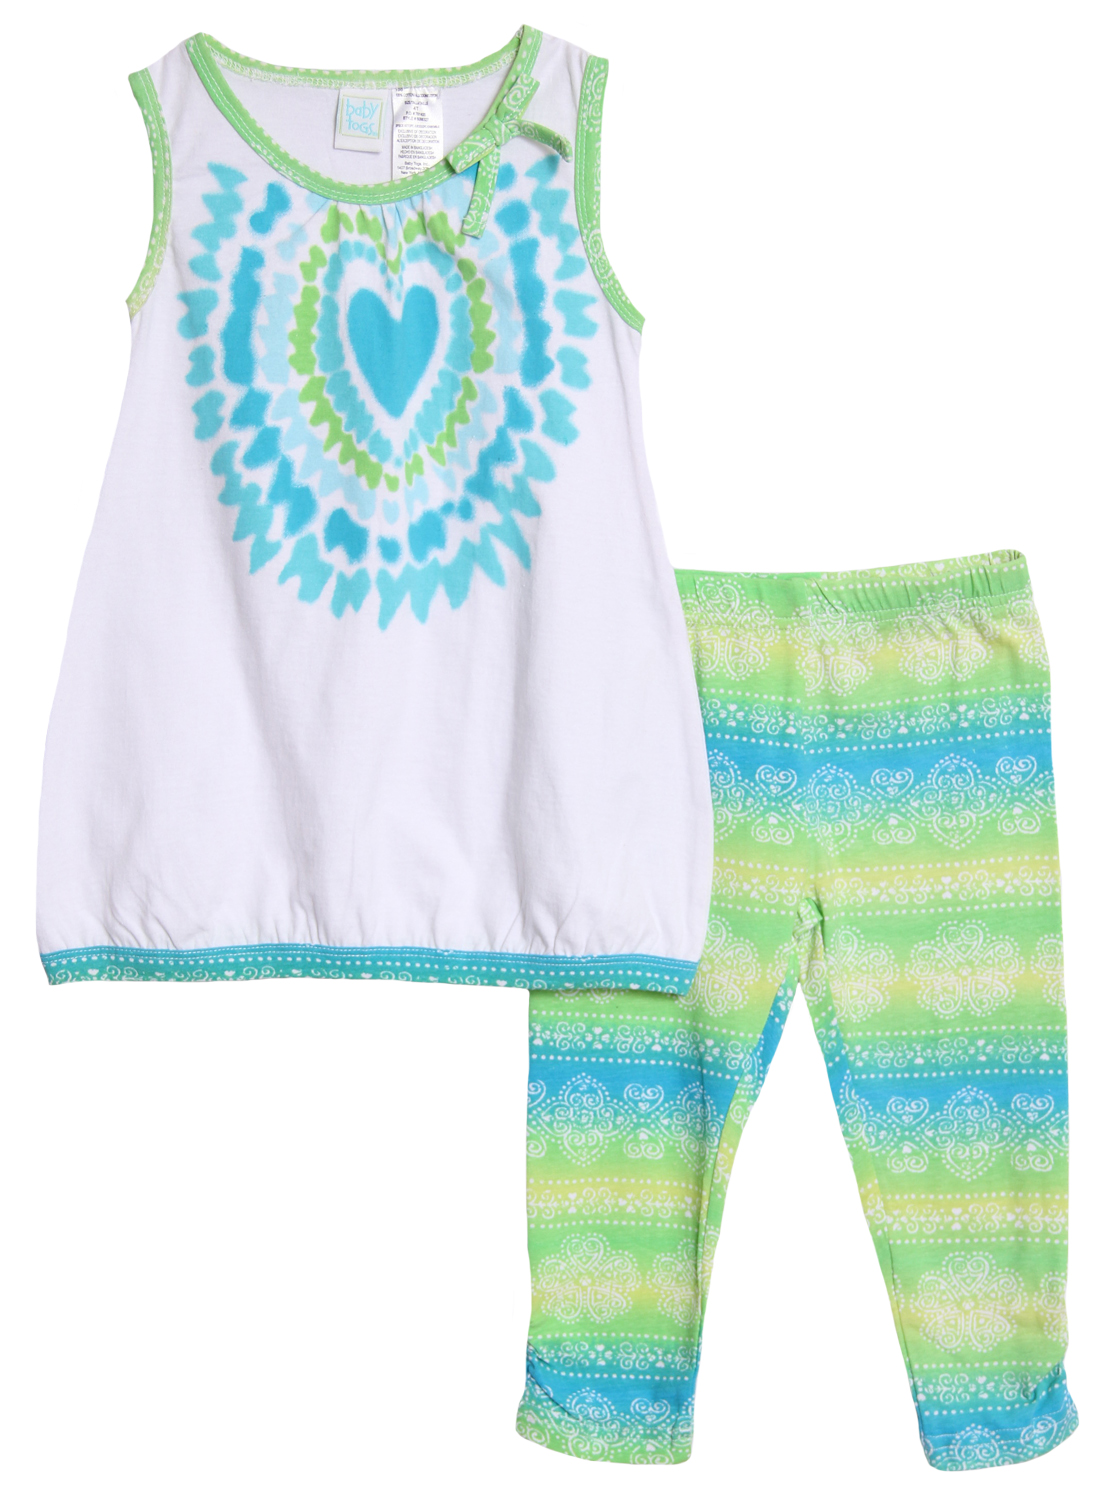 Baby Togs Baby Girls' 2 Piece Tie Dye Tank Top Bright Summer Leggings Set at Sears.com